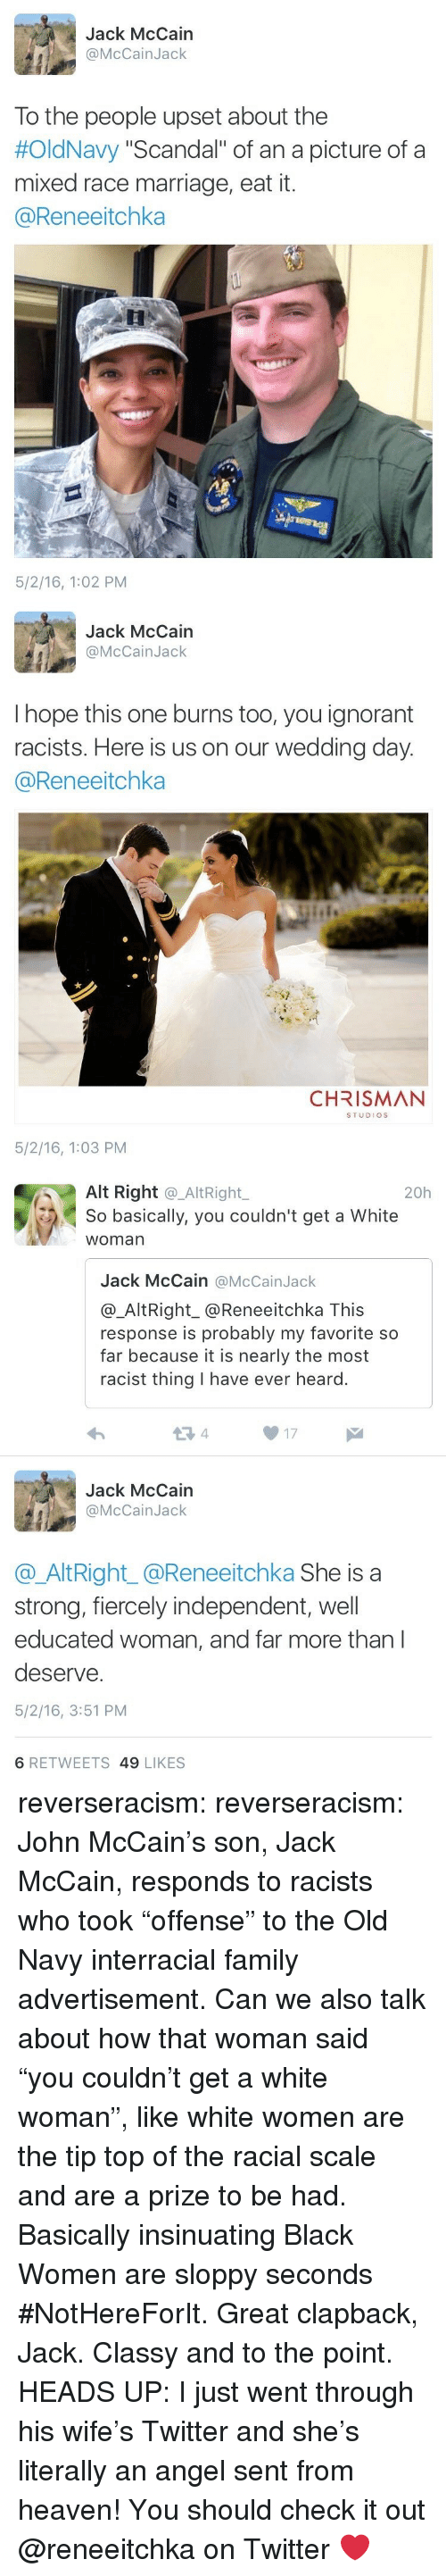 """alt-right: Jack McCain  @McCainJack  To the people upset about the  #OldNavy """"Scandal"""" of an a picture of a  mixed race marriage, eat it.  @Reneeitchka  5/2/16, 1:02 PM   Jack McCain  @McCainJack  I hope this one burns too, you ignorant  racists. Here is us on our wedding day  @Reneeitchka  CHRISMAN  STUDIOS  5/2/16, 1:03 PM   Alt Right @_AltRight,  So basically, you couldn't get a White  woman  20h  Jack McCain @McCainJack  @_AltRight_@Reneeitchka This  response is probably my favorite so  far because it is nearly the most  racist thing I have ever heard.  13 4  17  Jack McCain  @McCainJack  @AltRight_@Reneeitchka She is a  strong, fiercely independent, well  educated woman, and far more than l  deserve.  5/2/16, 3:51 PM  6 RETWEETS 49 LIKES reverseracism: reverseracism:  John McCain's son, Jack McCain, responds to racists who took """"offense"""" to the Old Navy interracial family advertisement.   Can we also talk about how that woman said """"you couldn't get a white woman"""", like white women are the tip top of the racial scale and are a prize to be had. Basically insinuating Black Women are sloppy seconds #NotHereForIt. Great clapback, Jack. Classy and to the point.  HEADS UP: I just went through his wife's Twitter and she's literally an angel sent from heaven!  You should check it out @reneeitchka on Twitter ❤️"""